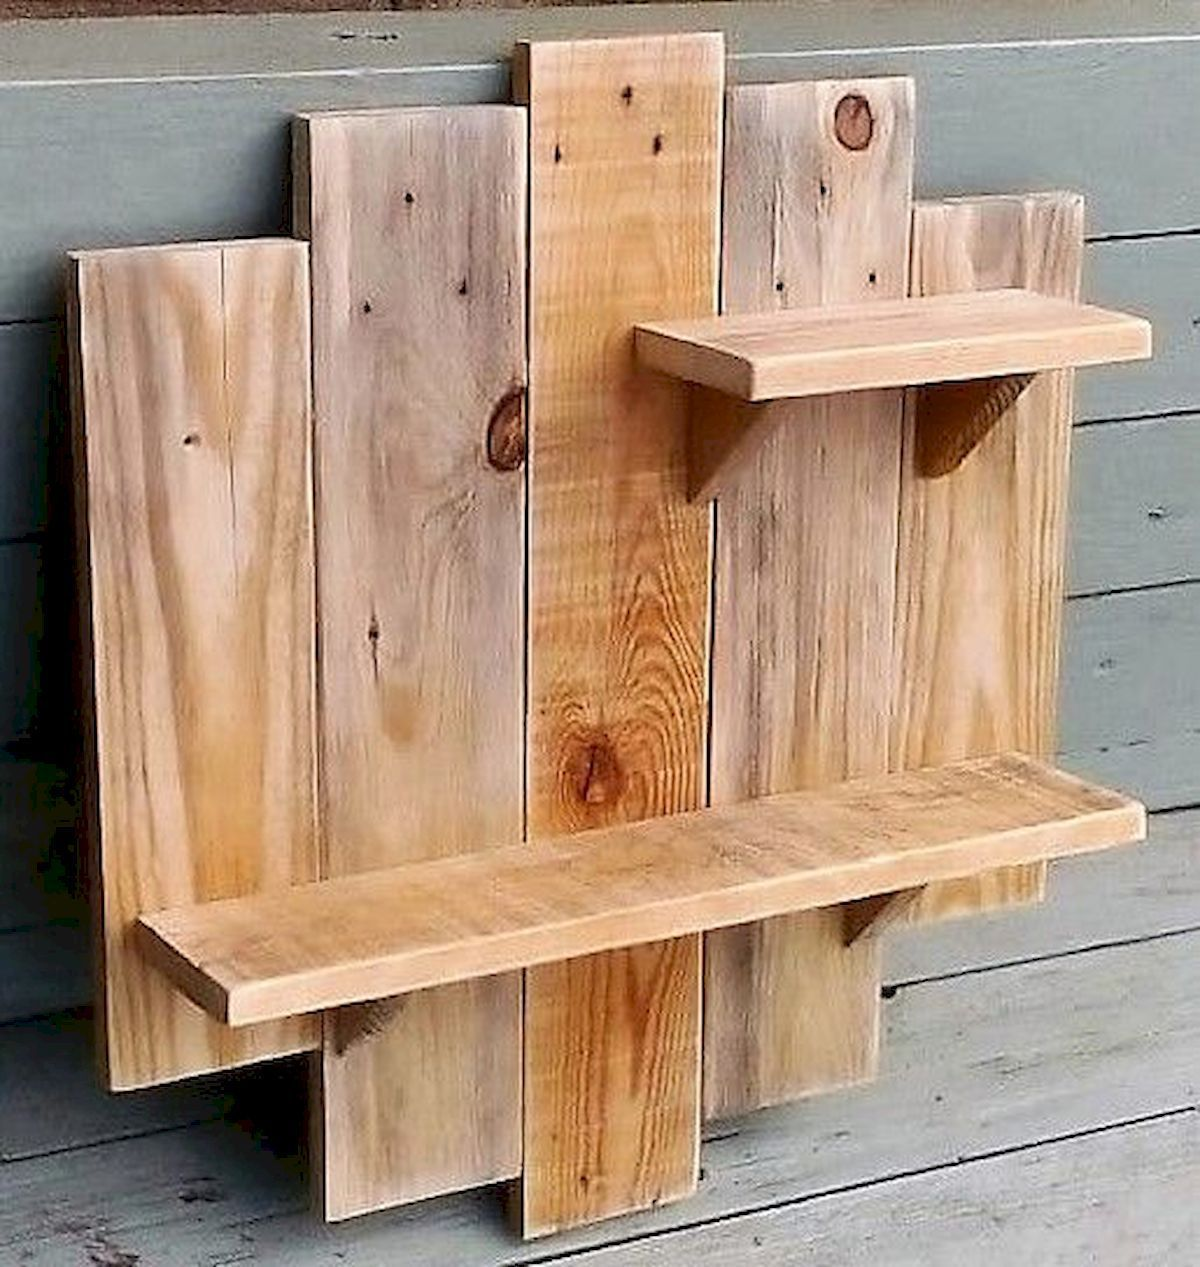 25 Most Creative Wooden Pallets Projects Ideas 23 Diy Wood